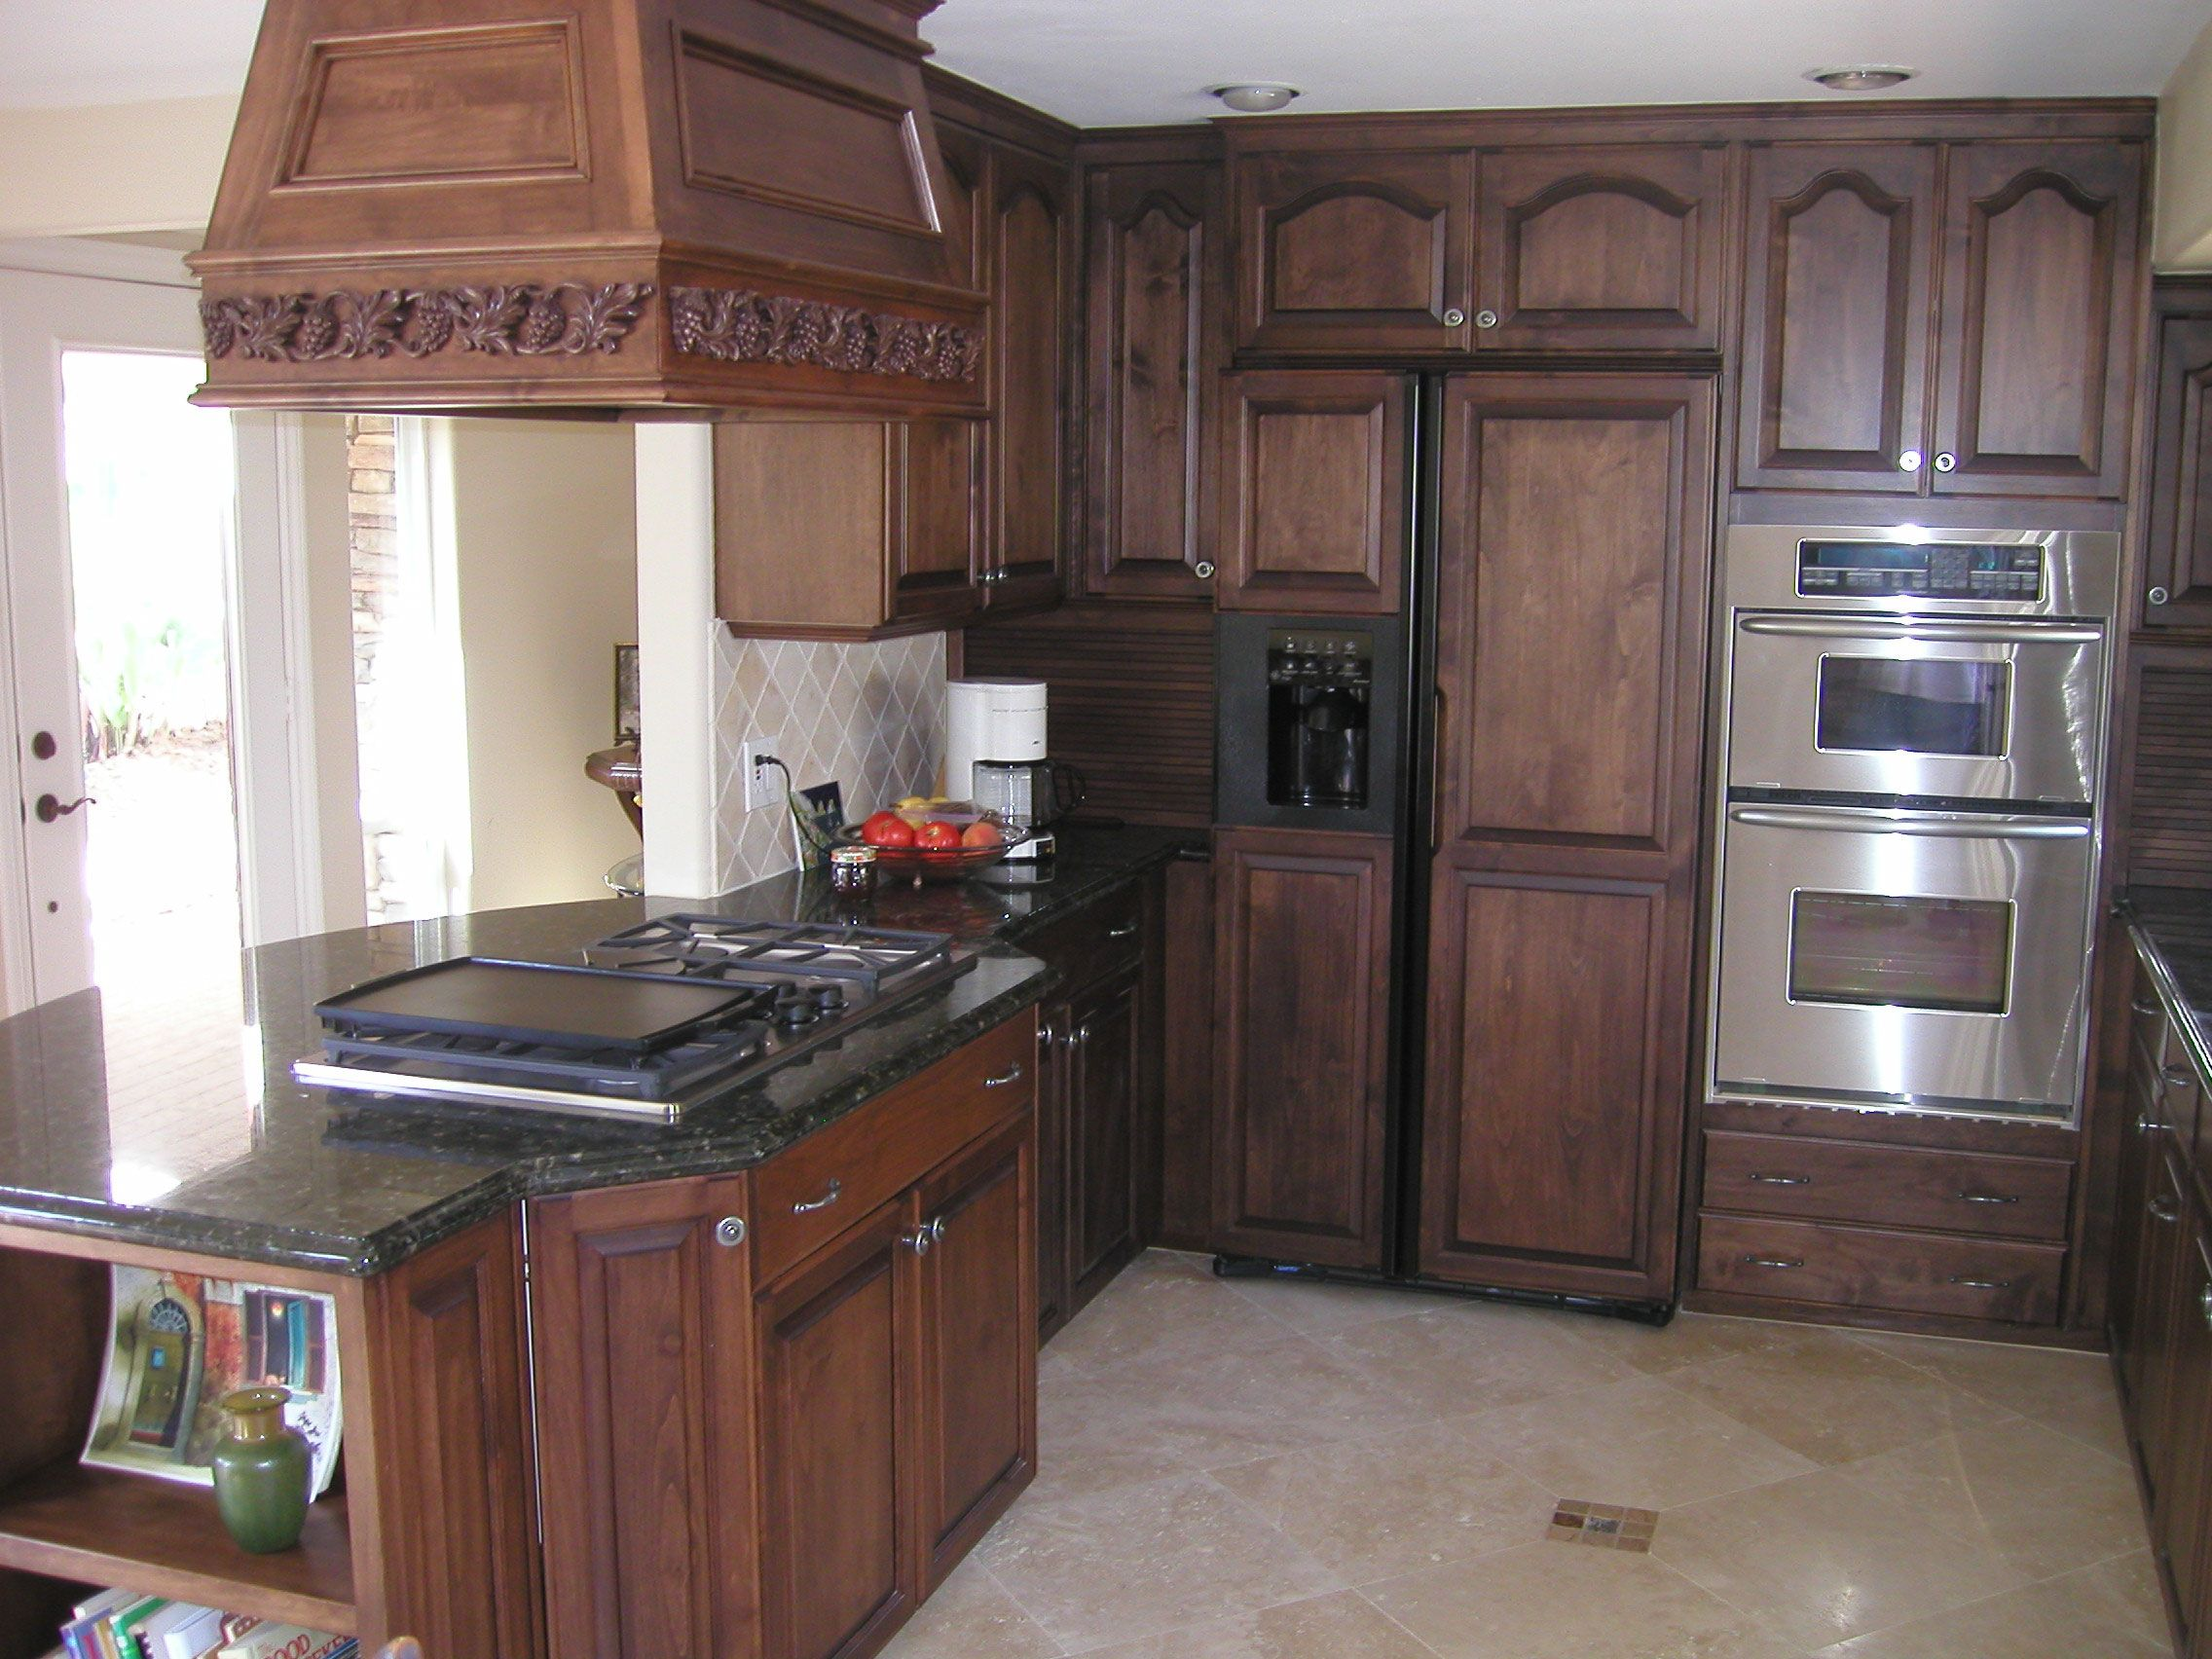 restaining kitchen cabinets a darker color restaining kitchen cabinets how to stain oak cabinets kitchen cabinets Stained dark oak and